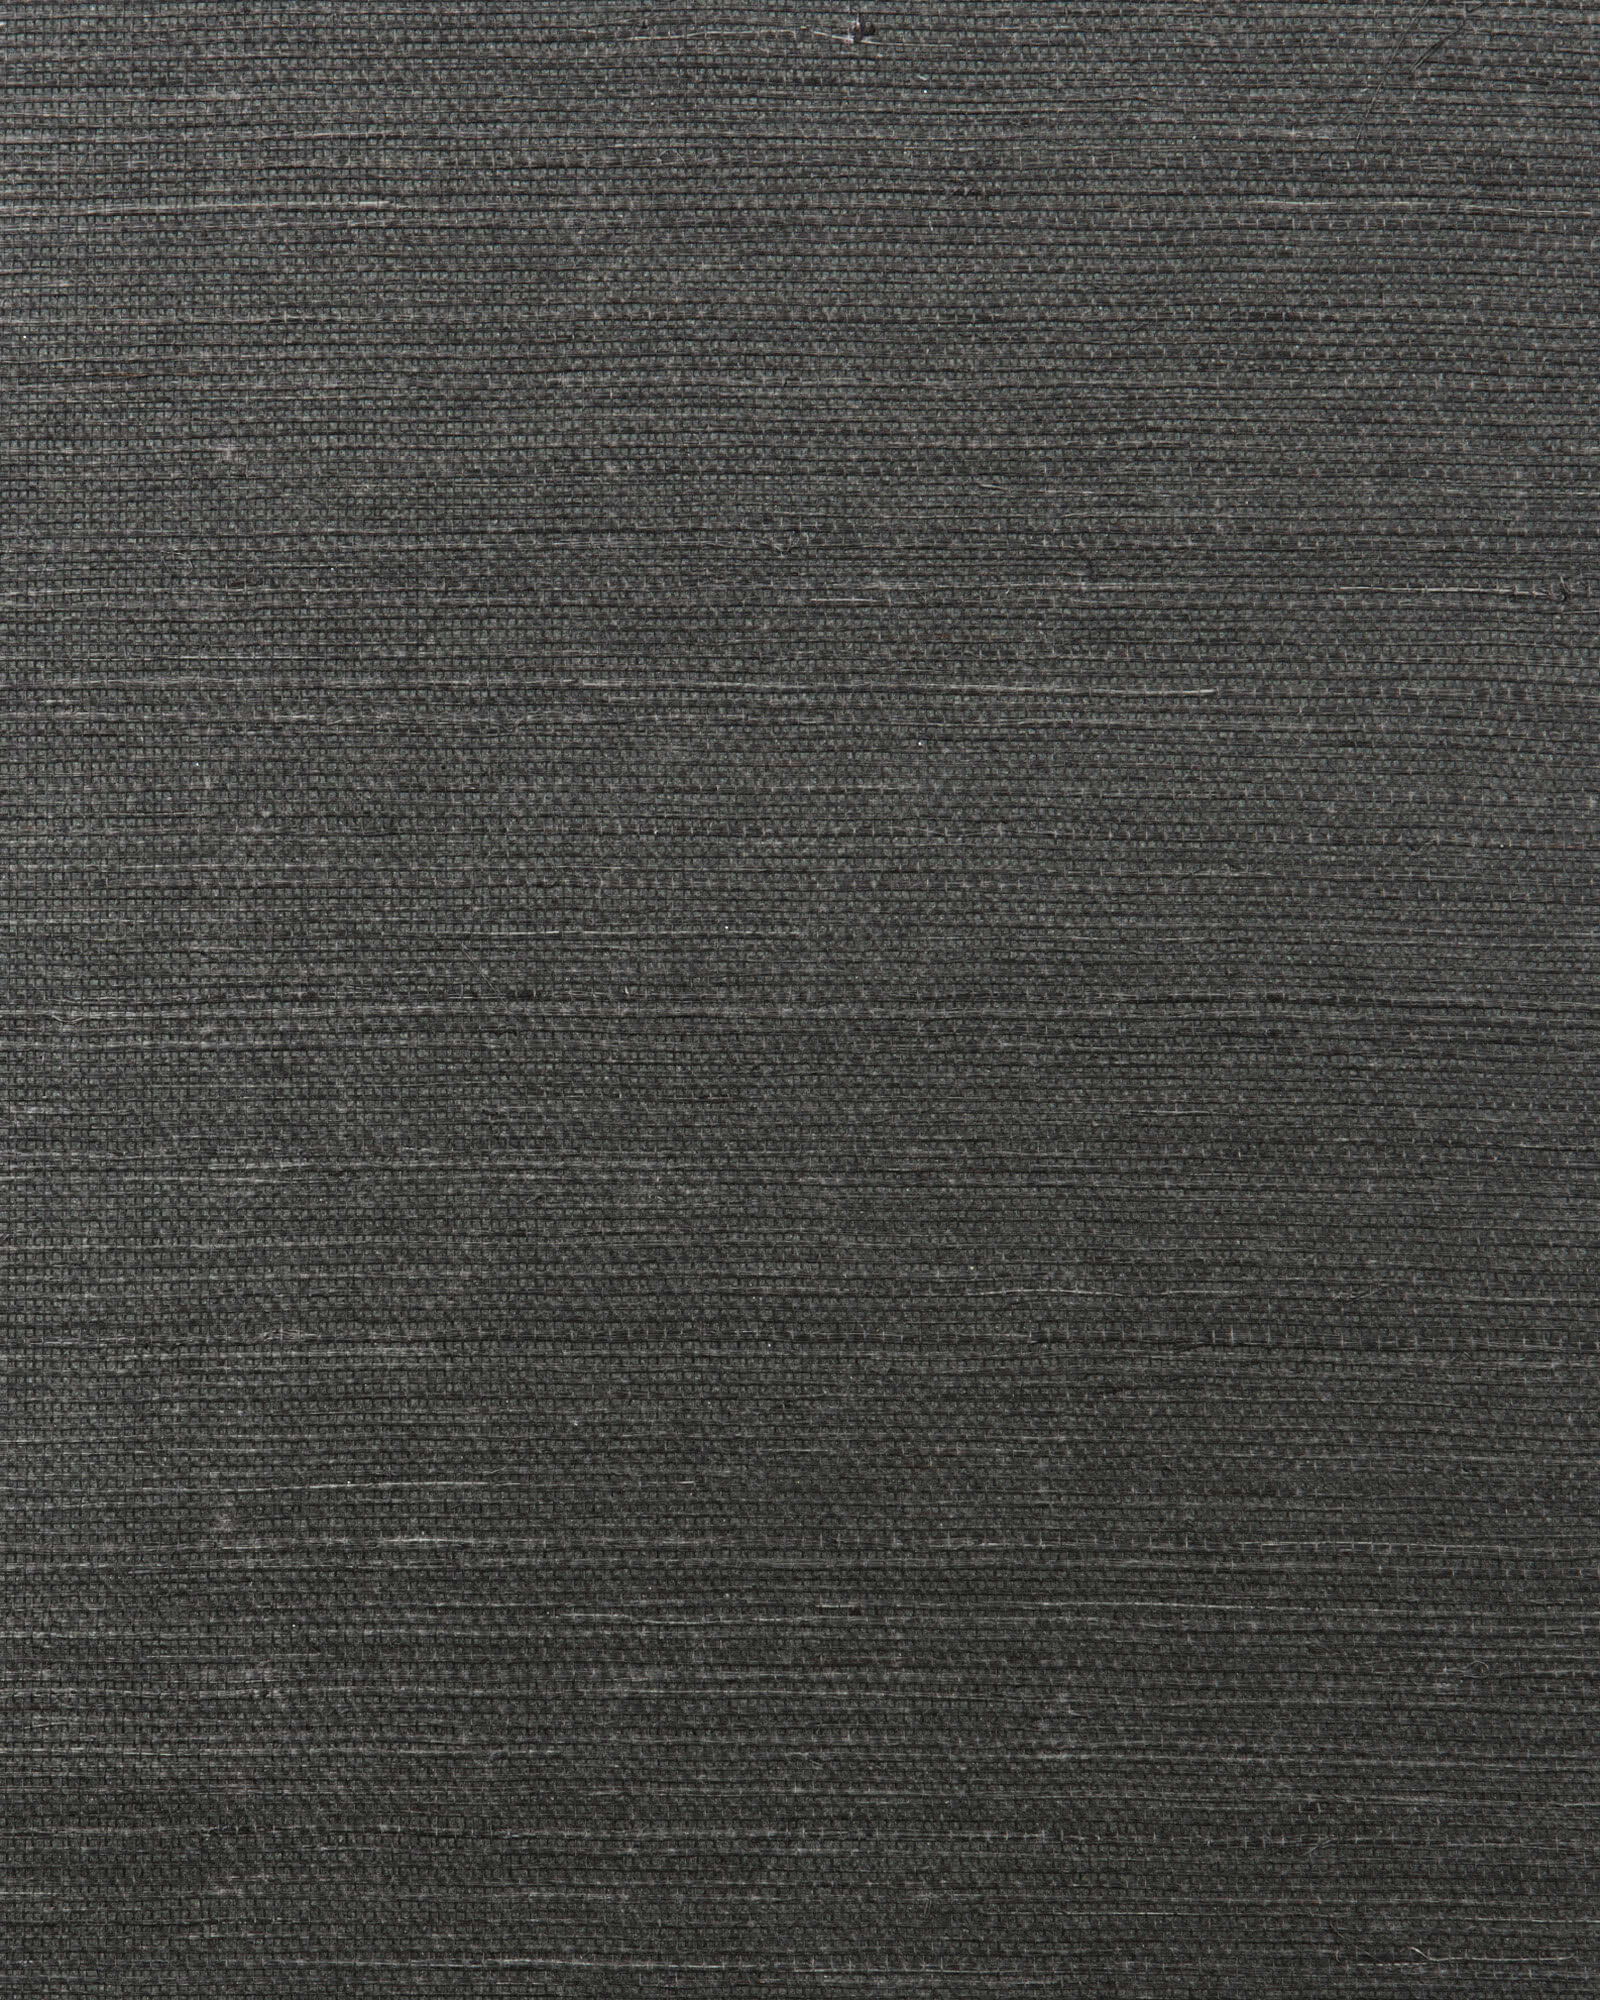 Grasscloth Wallcovering Swatch, Black